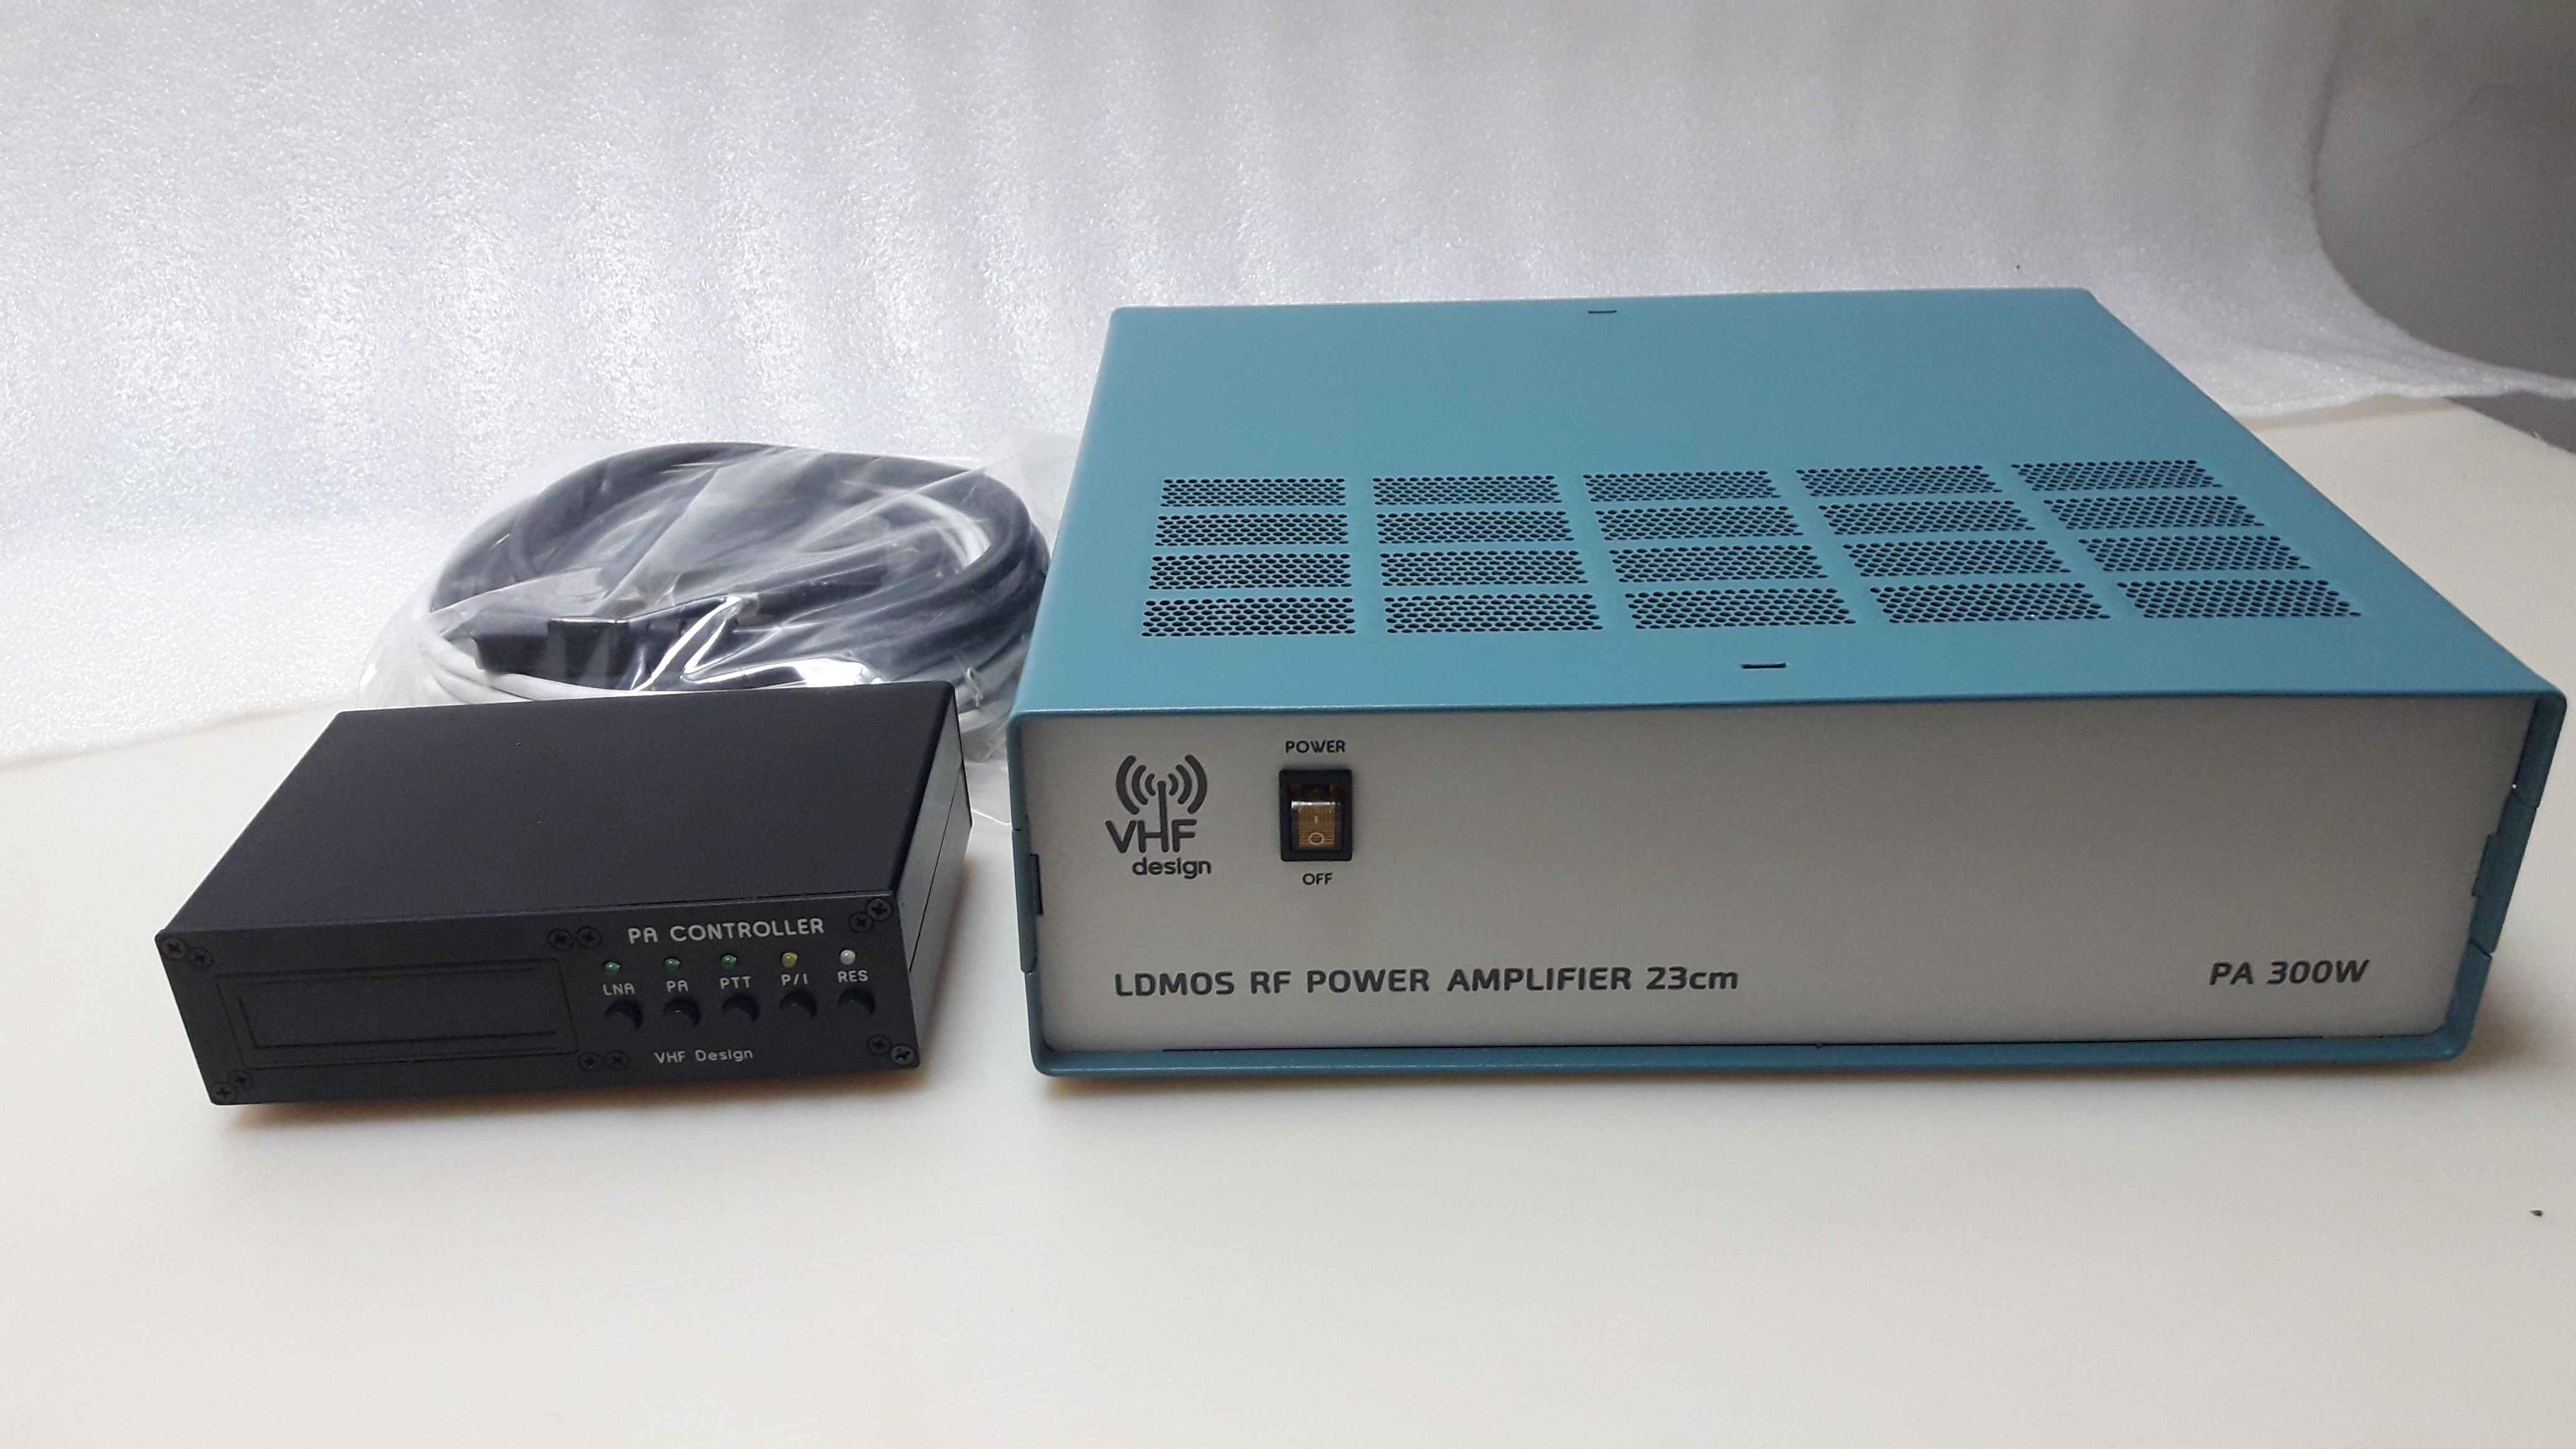 PA-23cm-box-with-controller-v2019-10-23